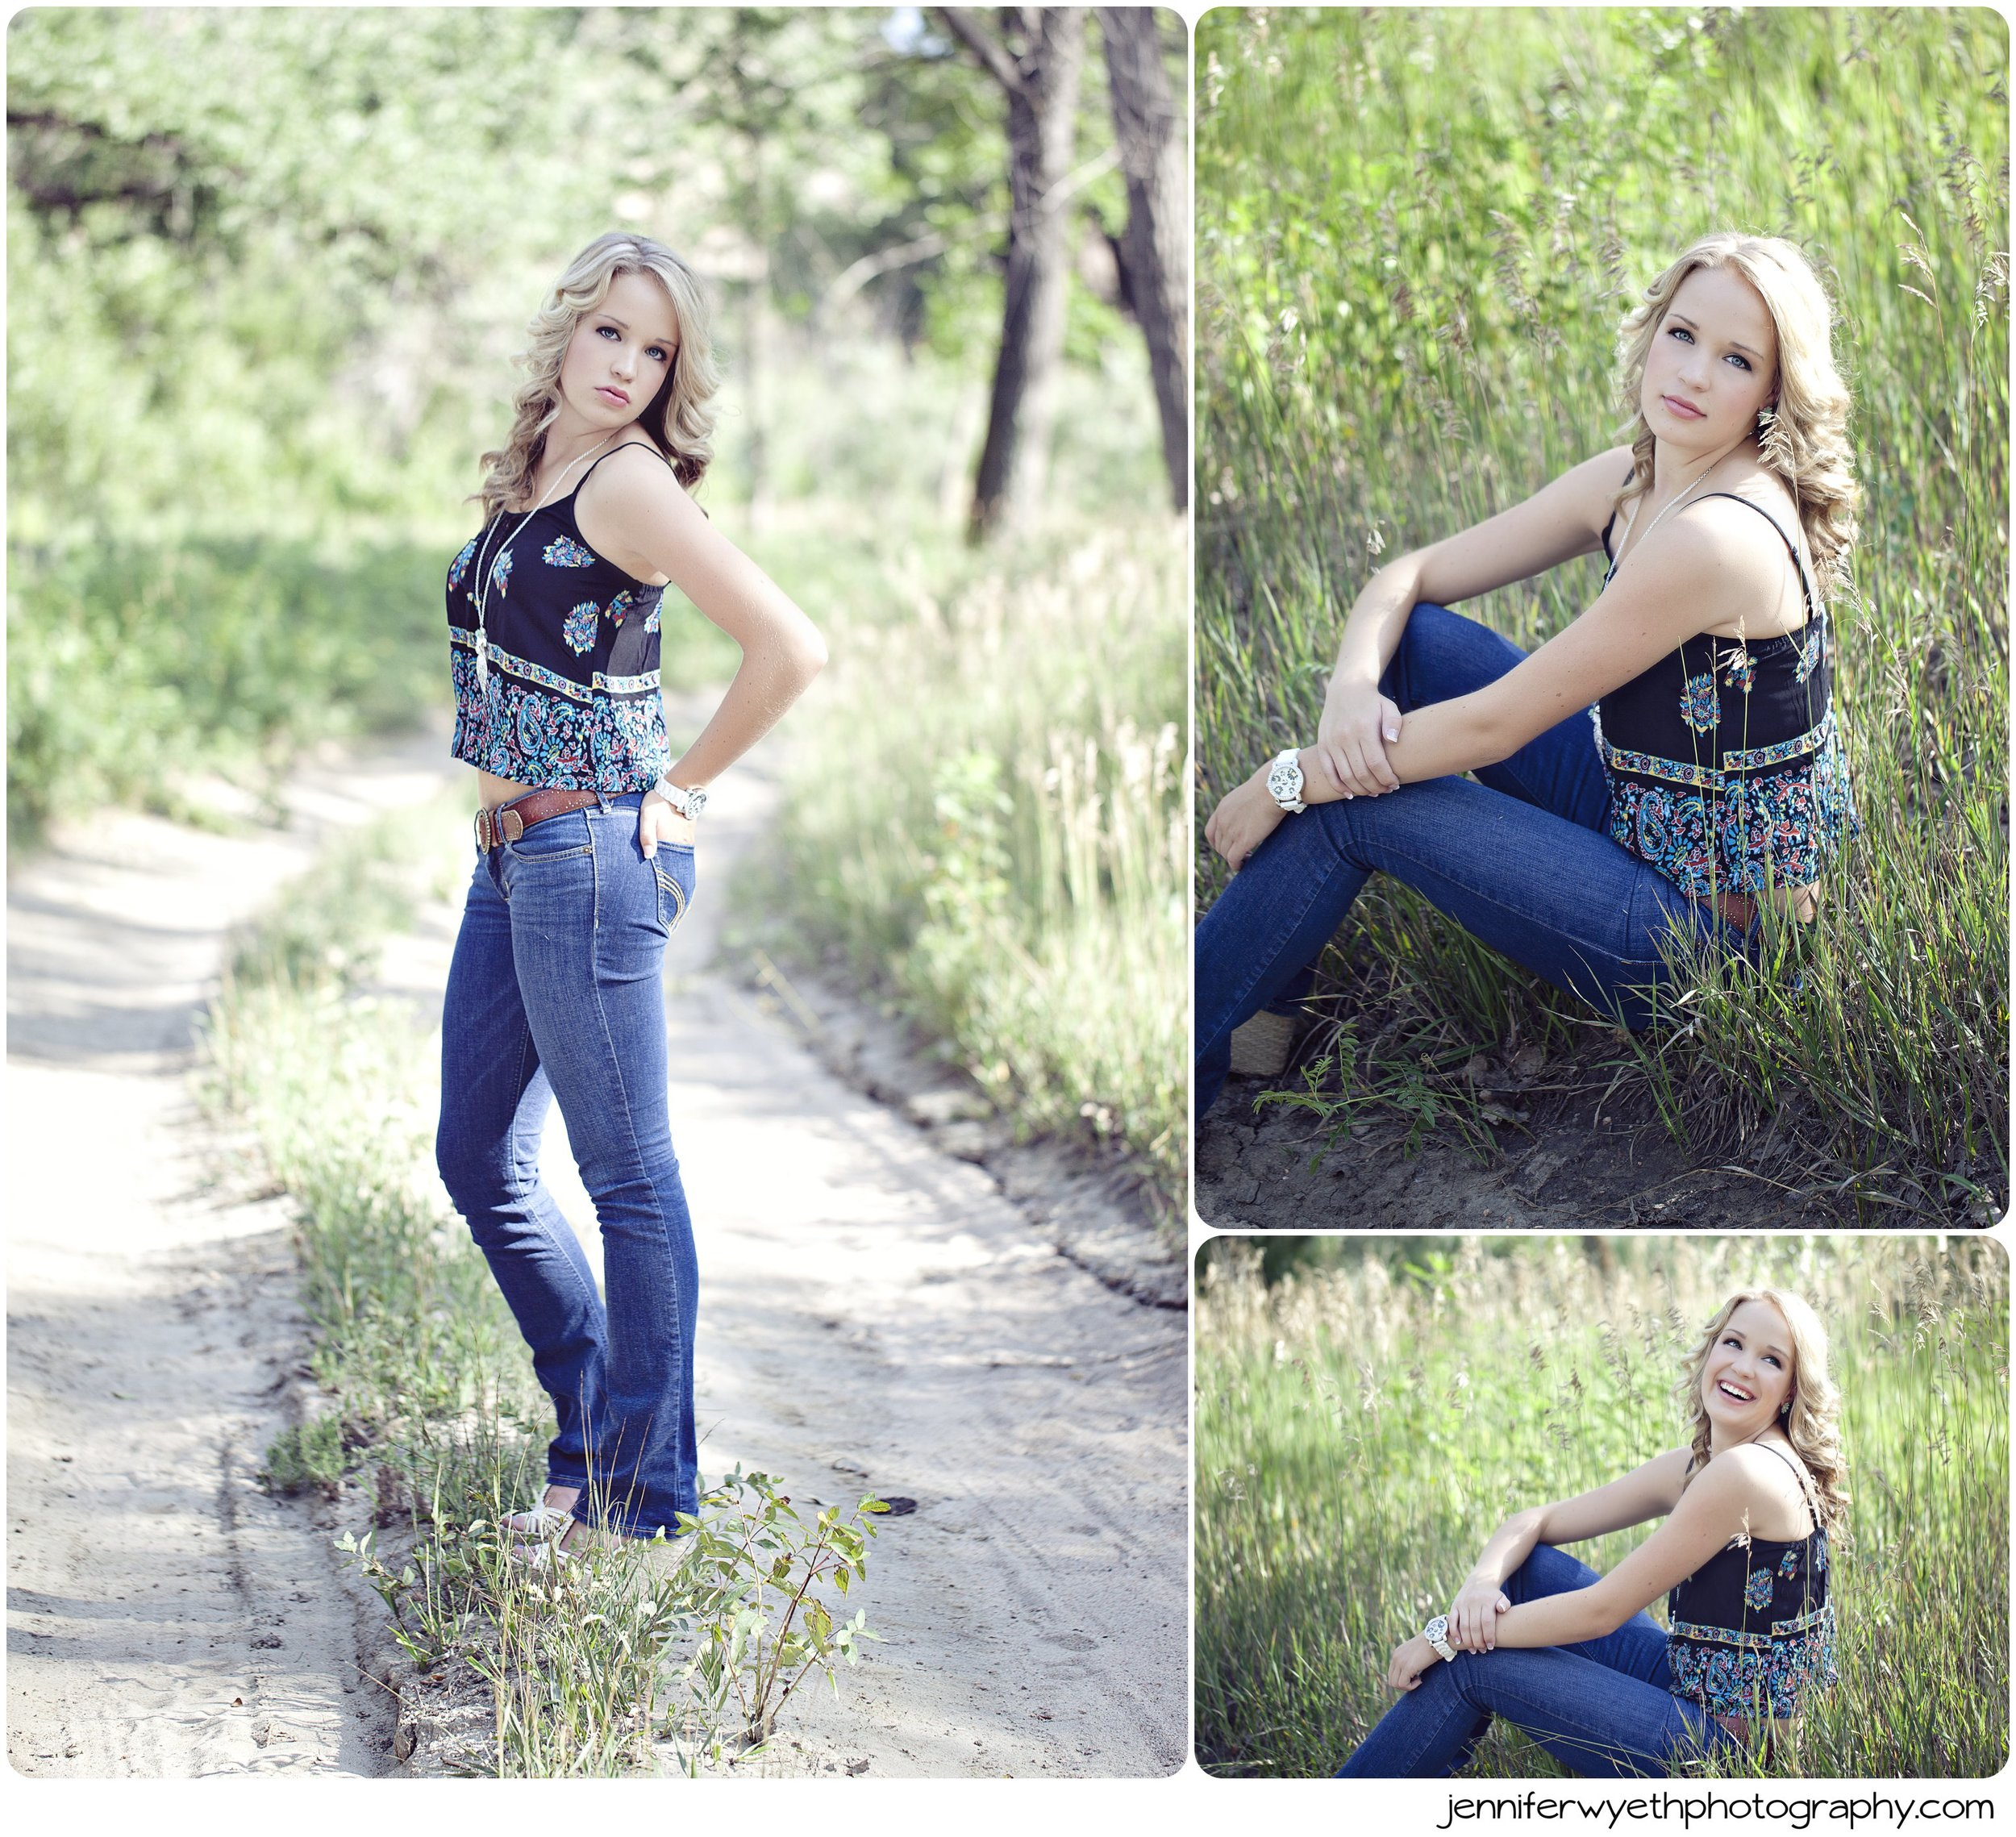 different poses in tall grass and on a dirt road